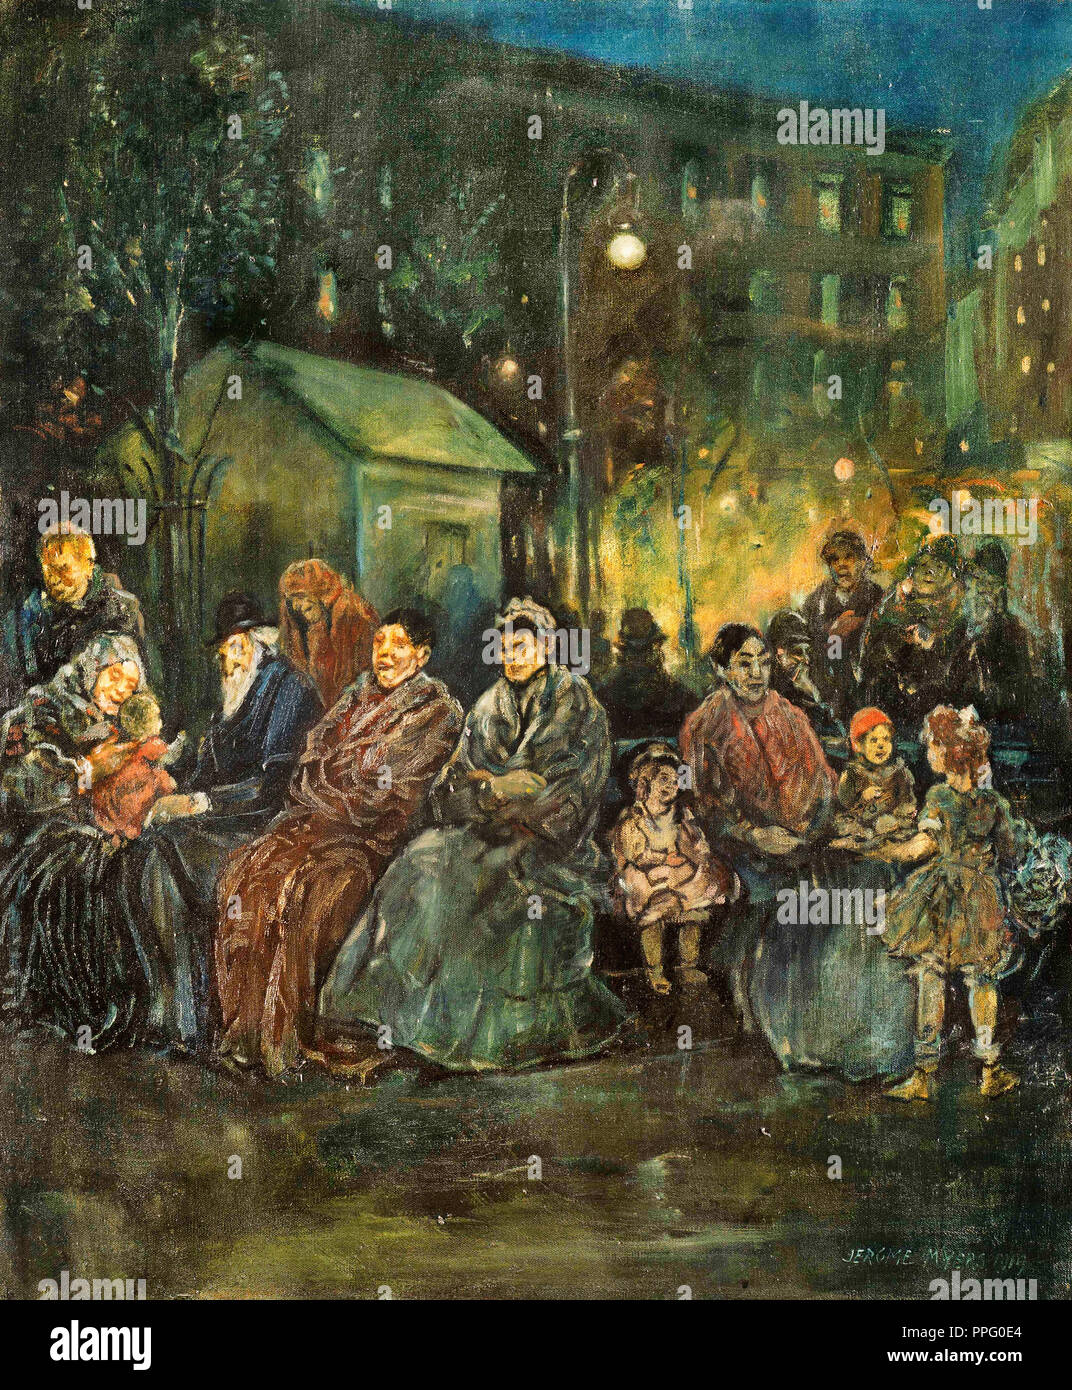 Jerome Myers, Night in Seward Park 1919 Oil on canvas. Phillips Collection, Washington, D.C., USA. - Stock Image